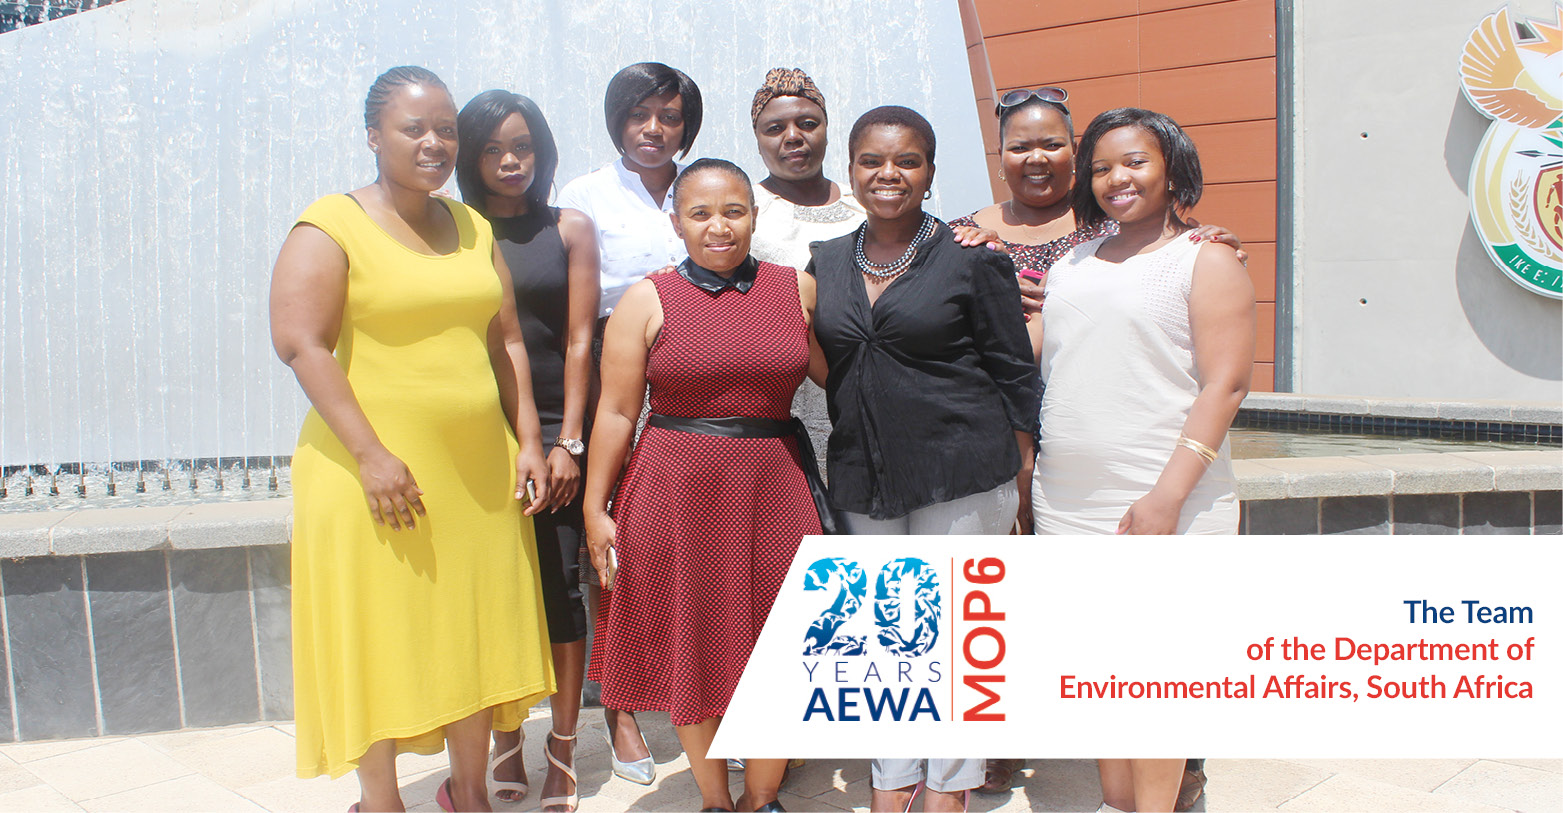 People behind AEWA - The Team of the Department of Environmental Affairs, South Africa